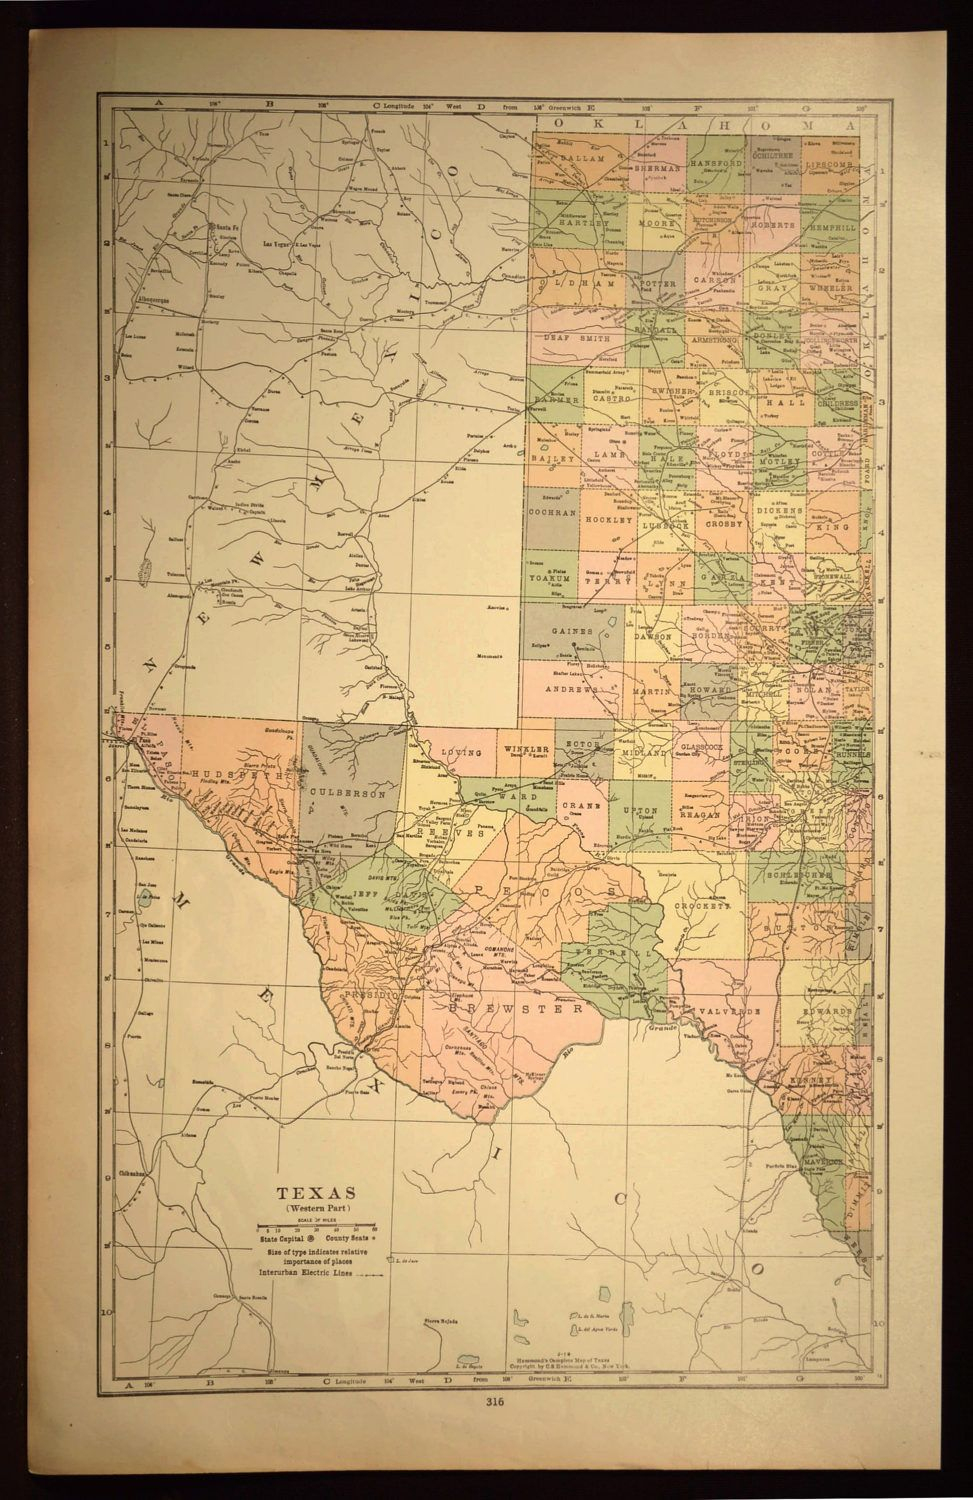 West Texas Map Of Texas Wall Art Decor Large Western Gift Idea Gift - Map Of Texas Art